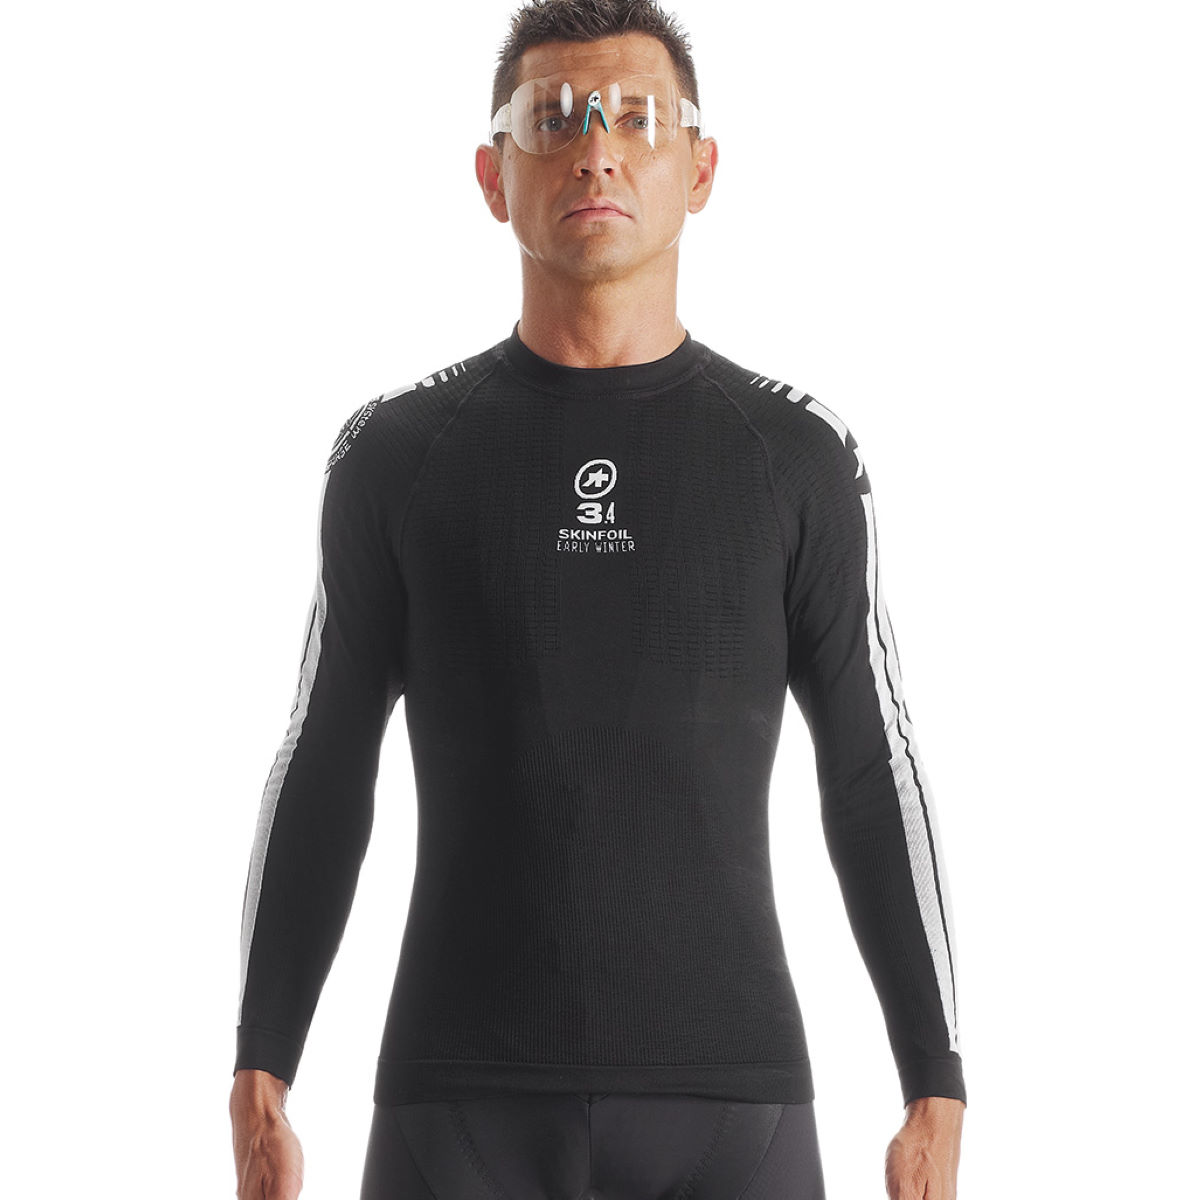 Assos ls skinfoilearlywinter evo7 base layer base layers blok black aw15 p13 40 418 15 0 5